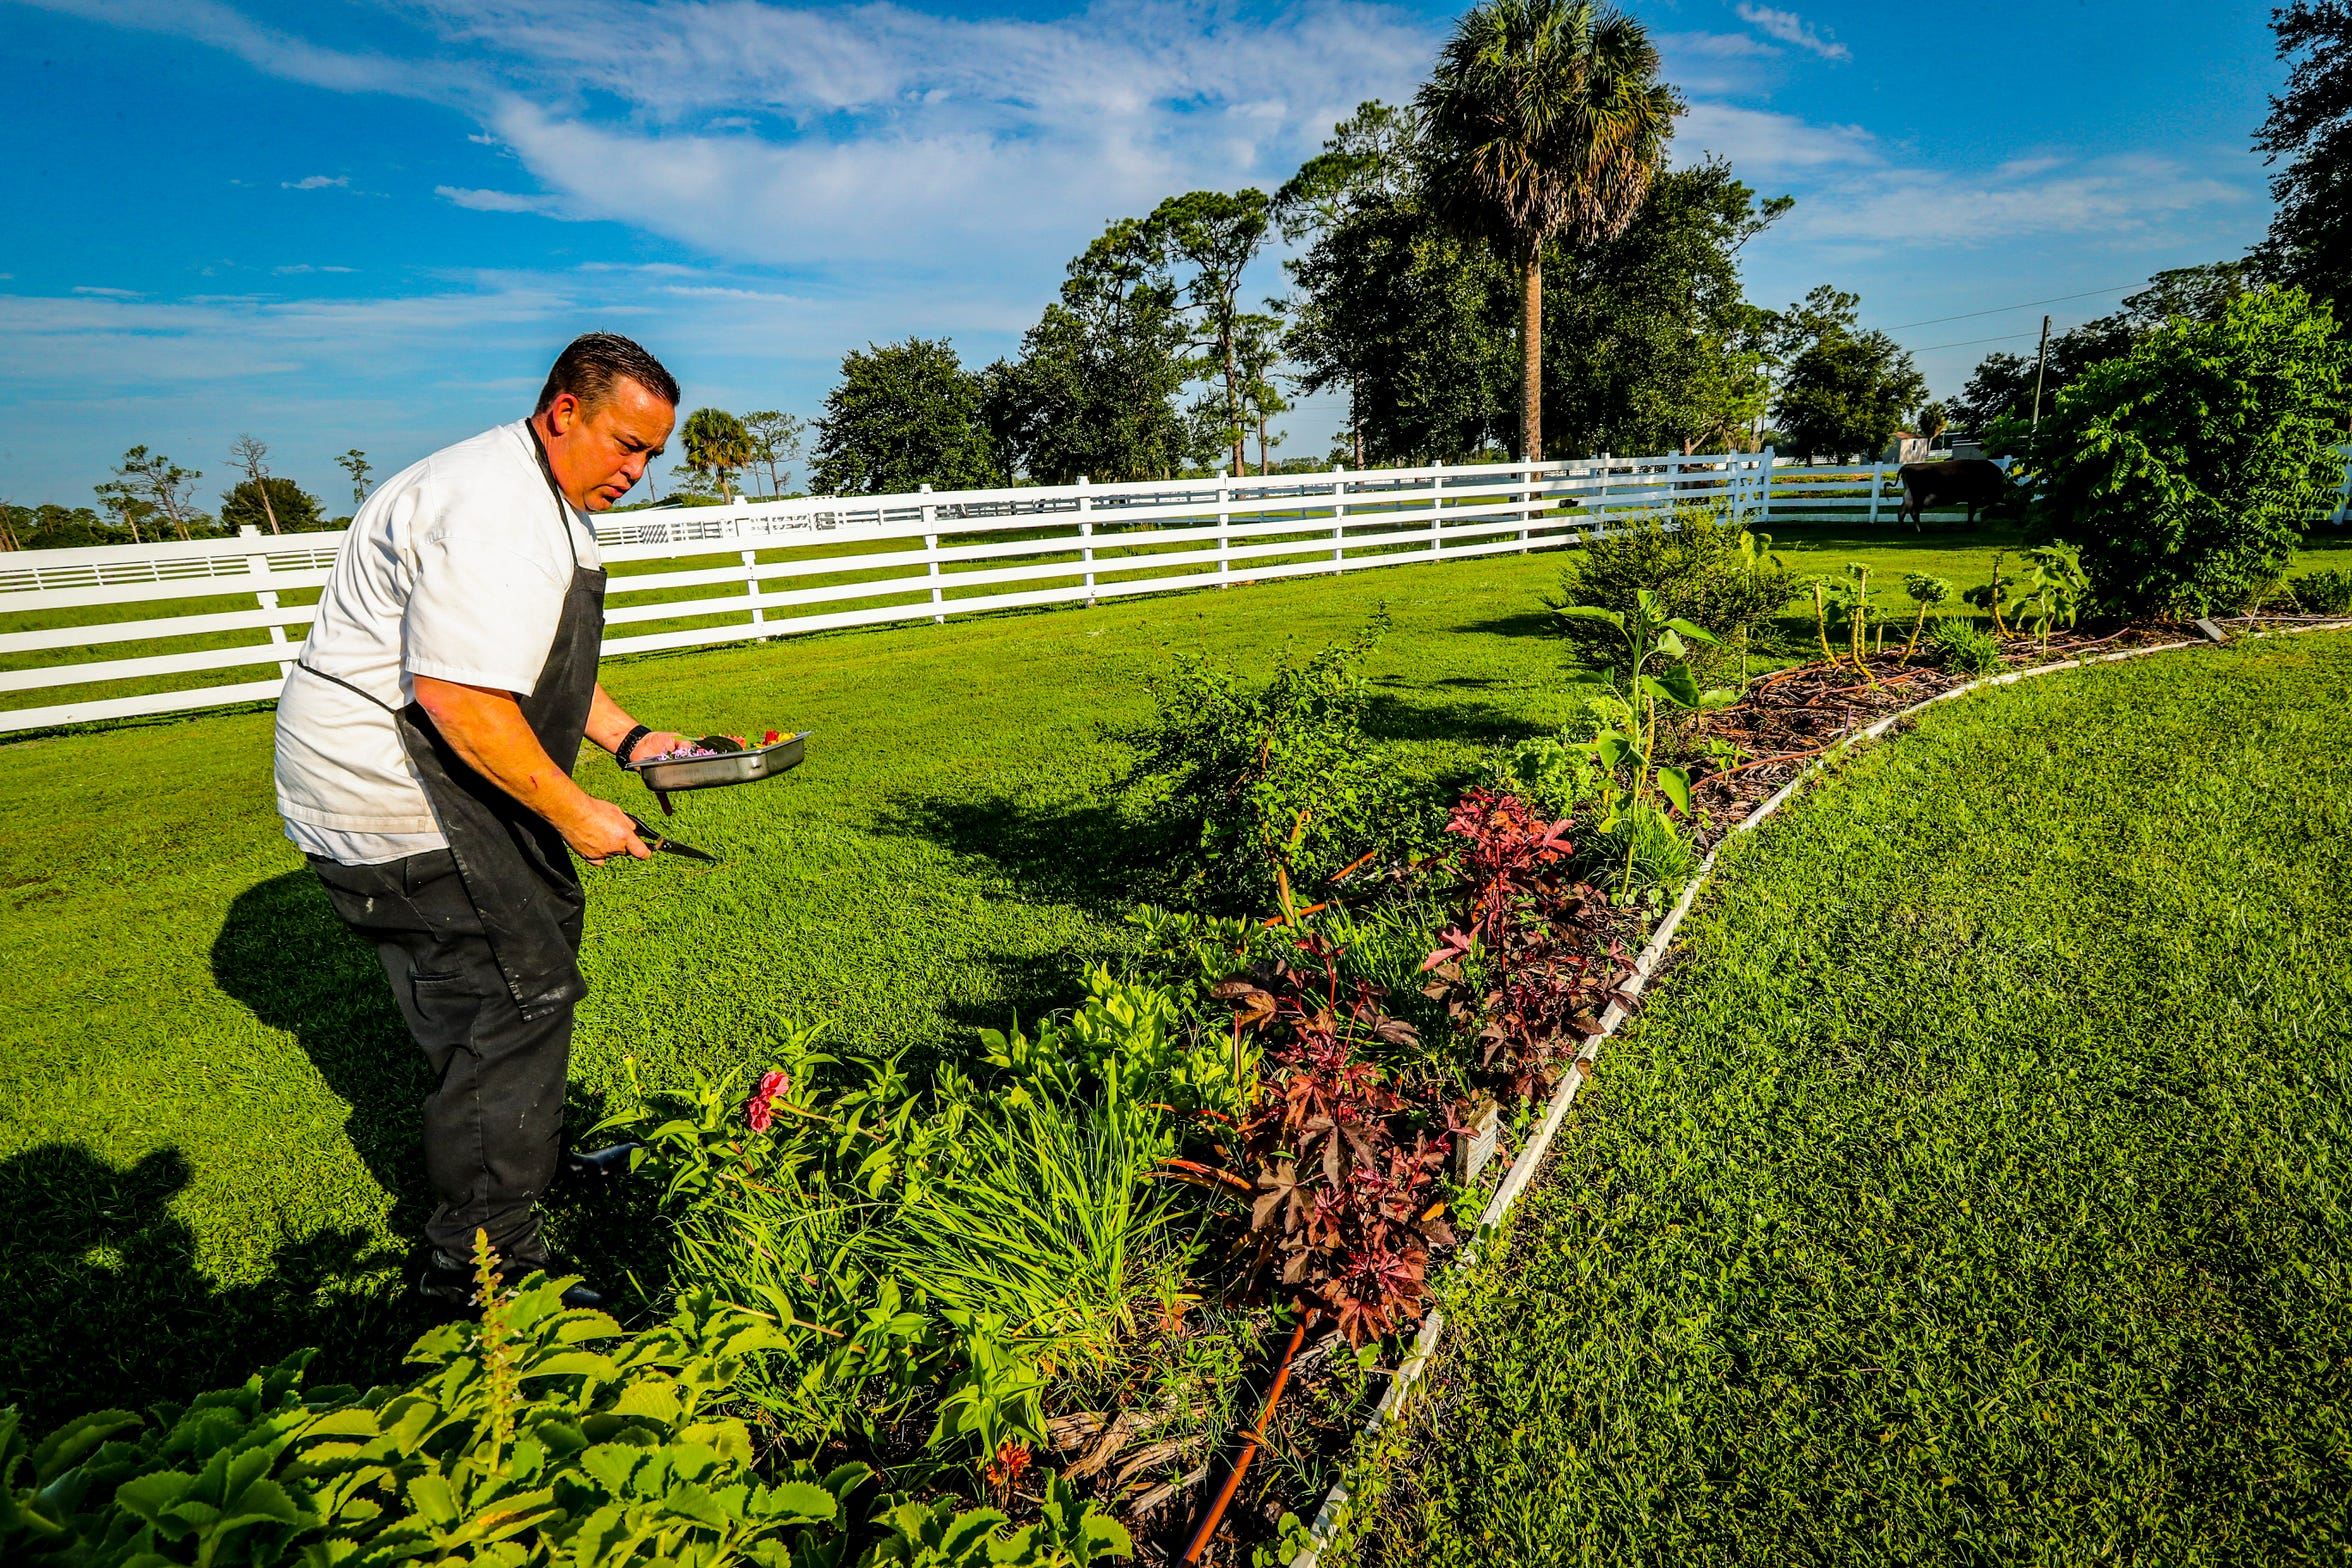 Chef Rich Howze harvests edible flowers and herbs from the kitchen's surrounding gardens to garnish his plates at Rosy Tomorrows Heritage Farm in North Fort Myers.